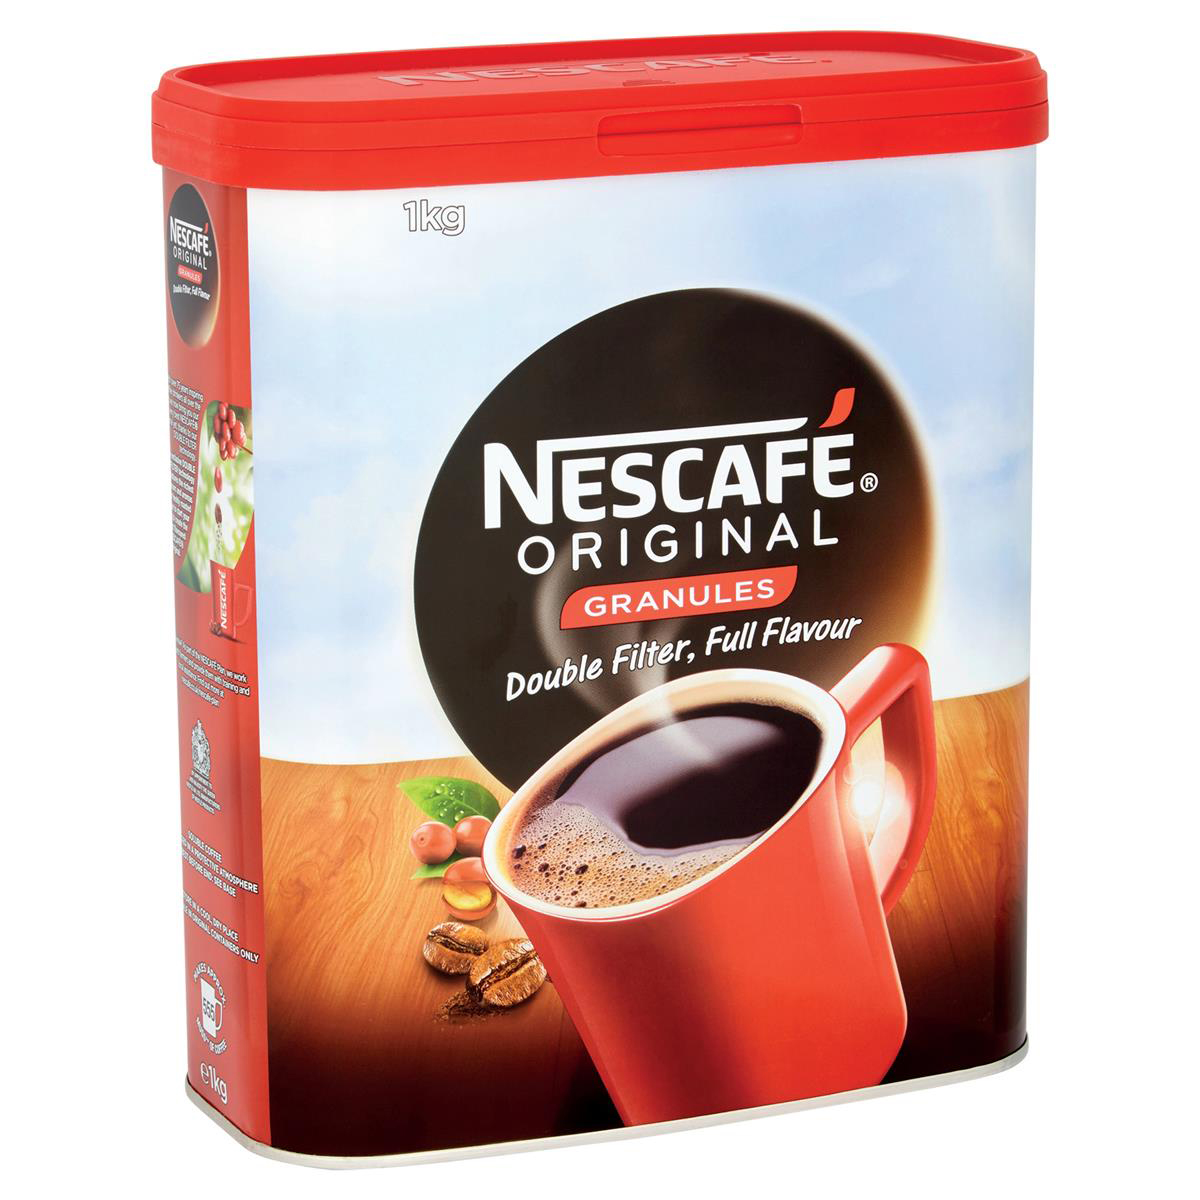 Coffee Nescafe Original Instant Coffee Granules Tin 1kg Ref 12315568